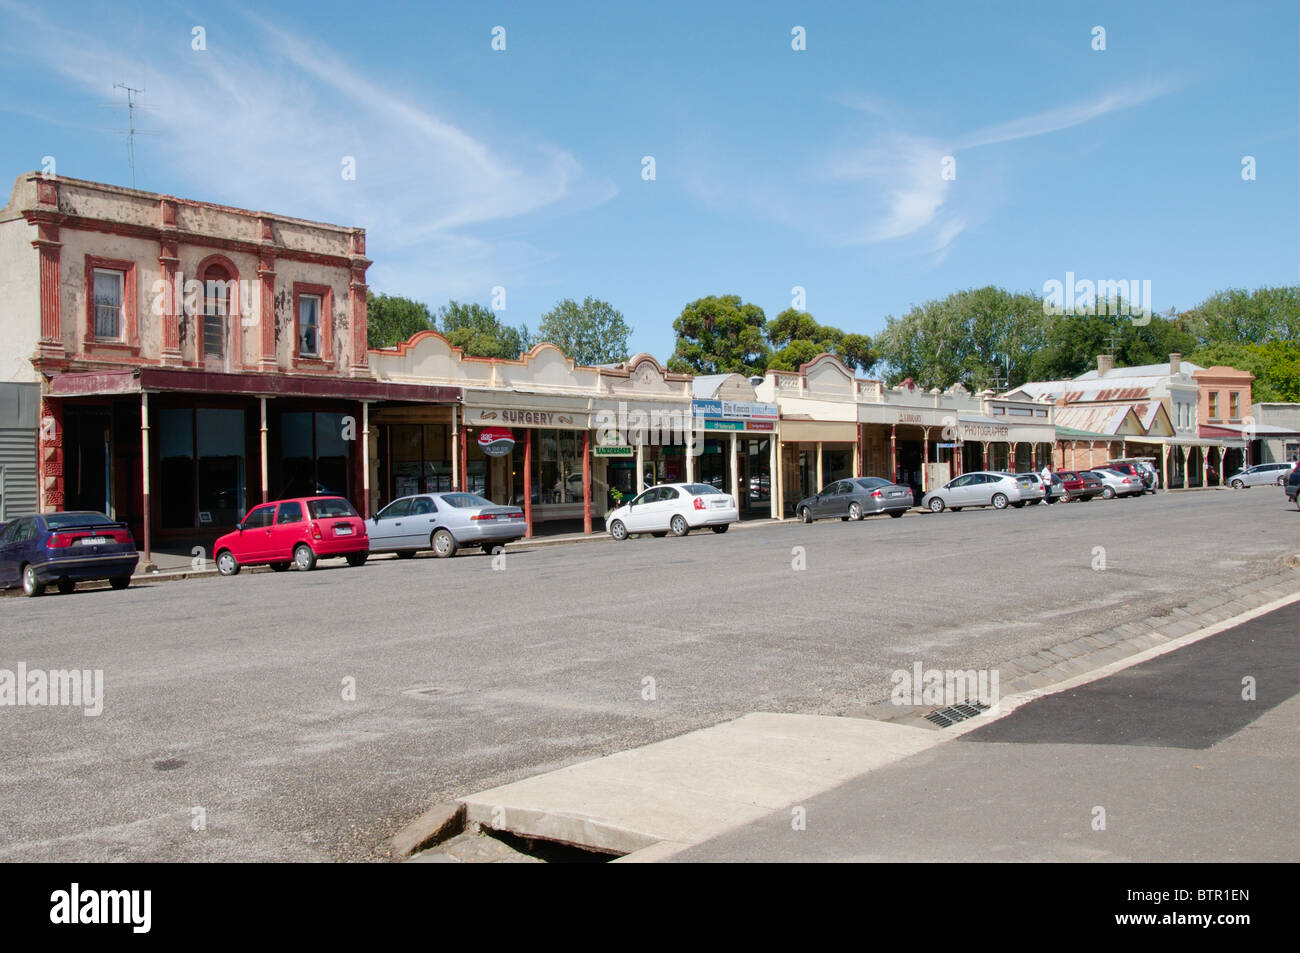 Australia, Central Victoria, Clunes, Main Street with cars parked near building - Stock Image